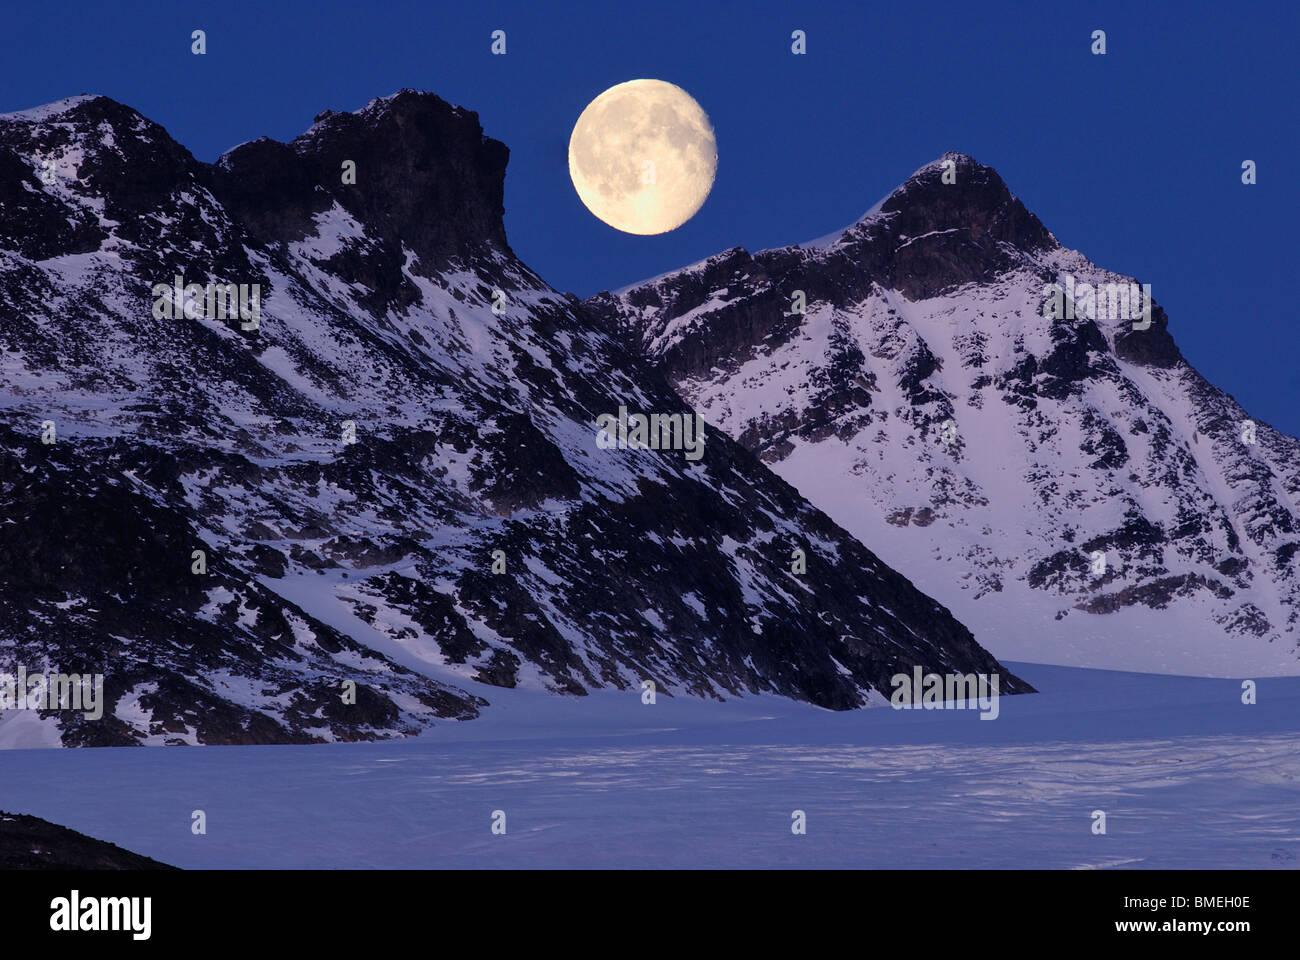 Scandinavia, Norway, Snowcapped mountains with moon in background - Stock Image